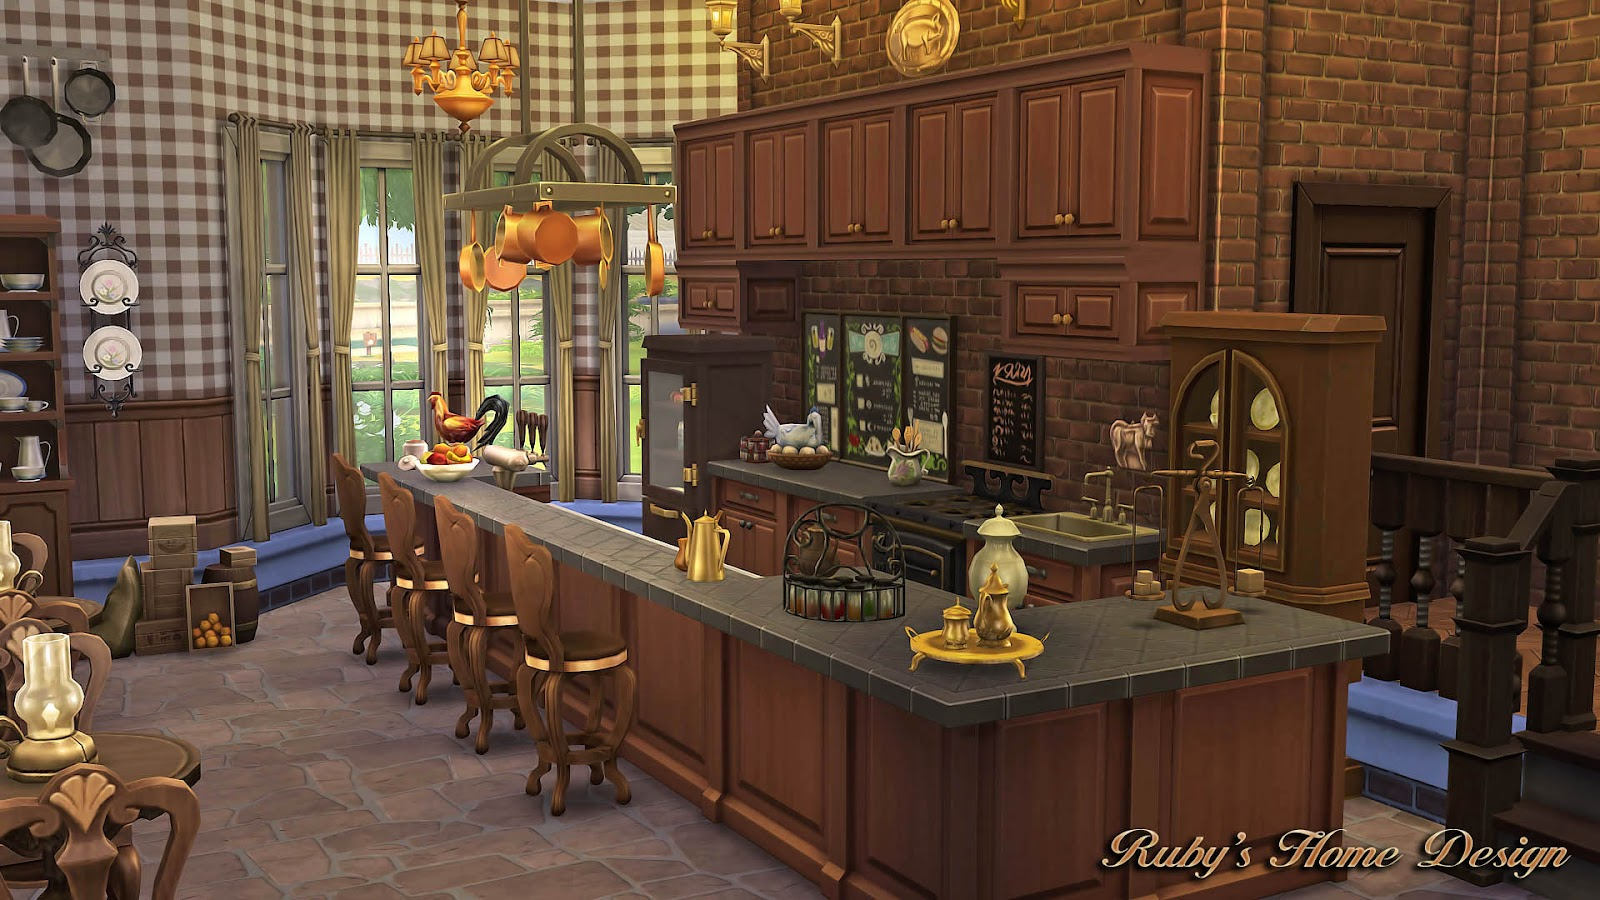 sims 3 work from home sims4 granny s kitchen 奶奶的鄉村廚房 no cc ruby s home design 319